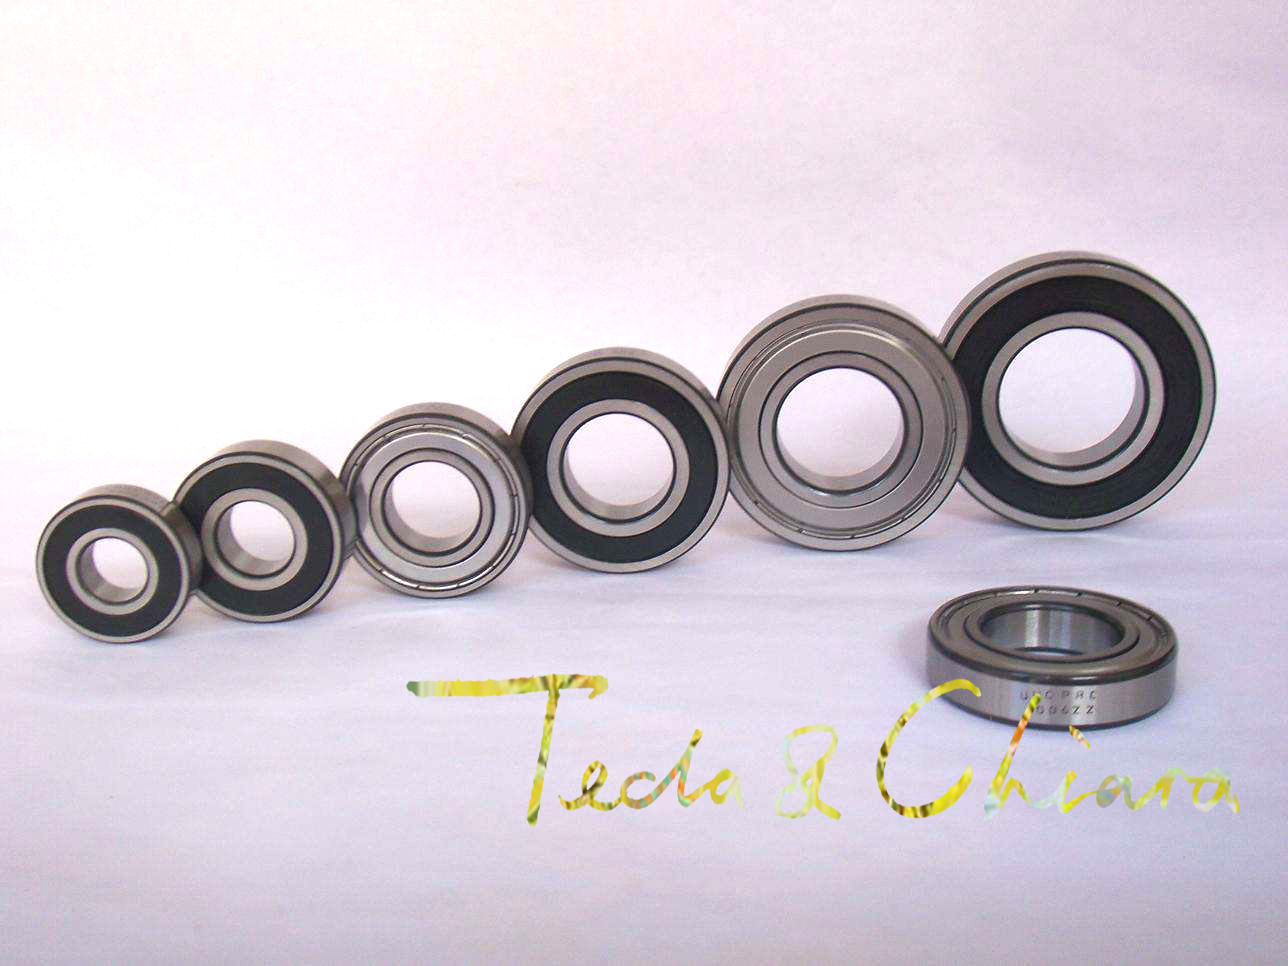 627 627ZZ 627RS 627-2Z 627Z 627-2RS ZZ RS RZ 2RZ Deep Groove Ball Bearings 7 X 22 X 7mm